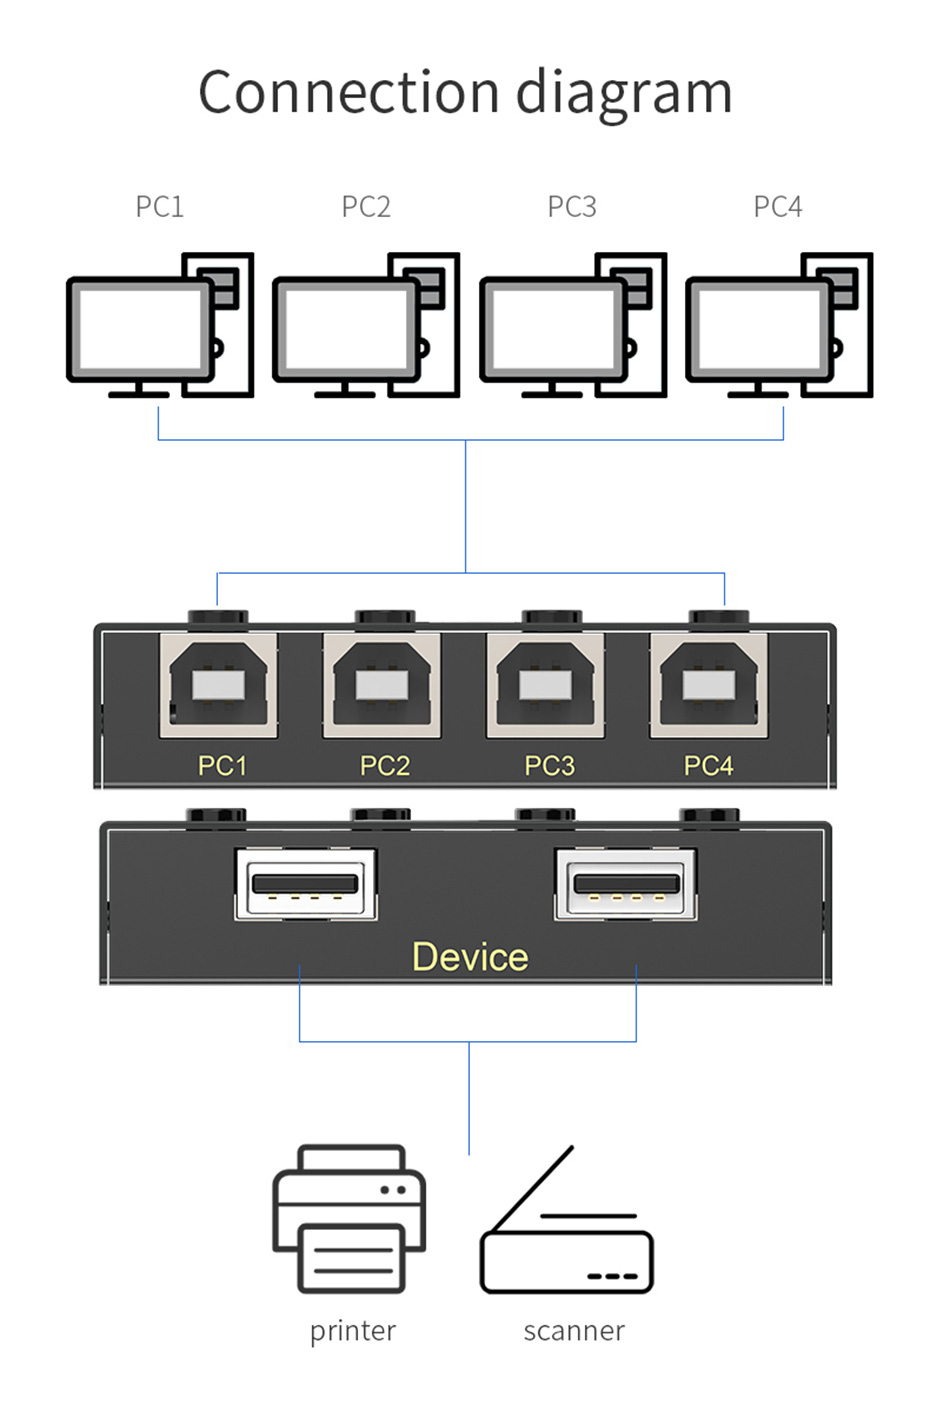 USB printer sharing device 4 in 2 out 04U connection diagram